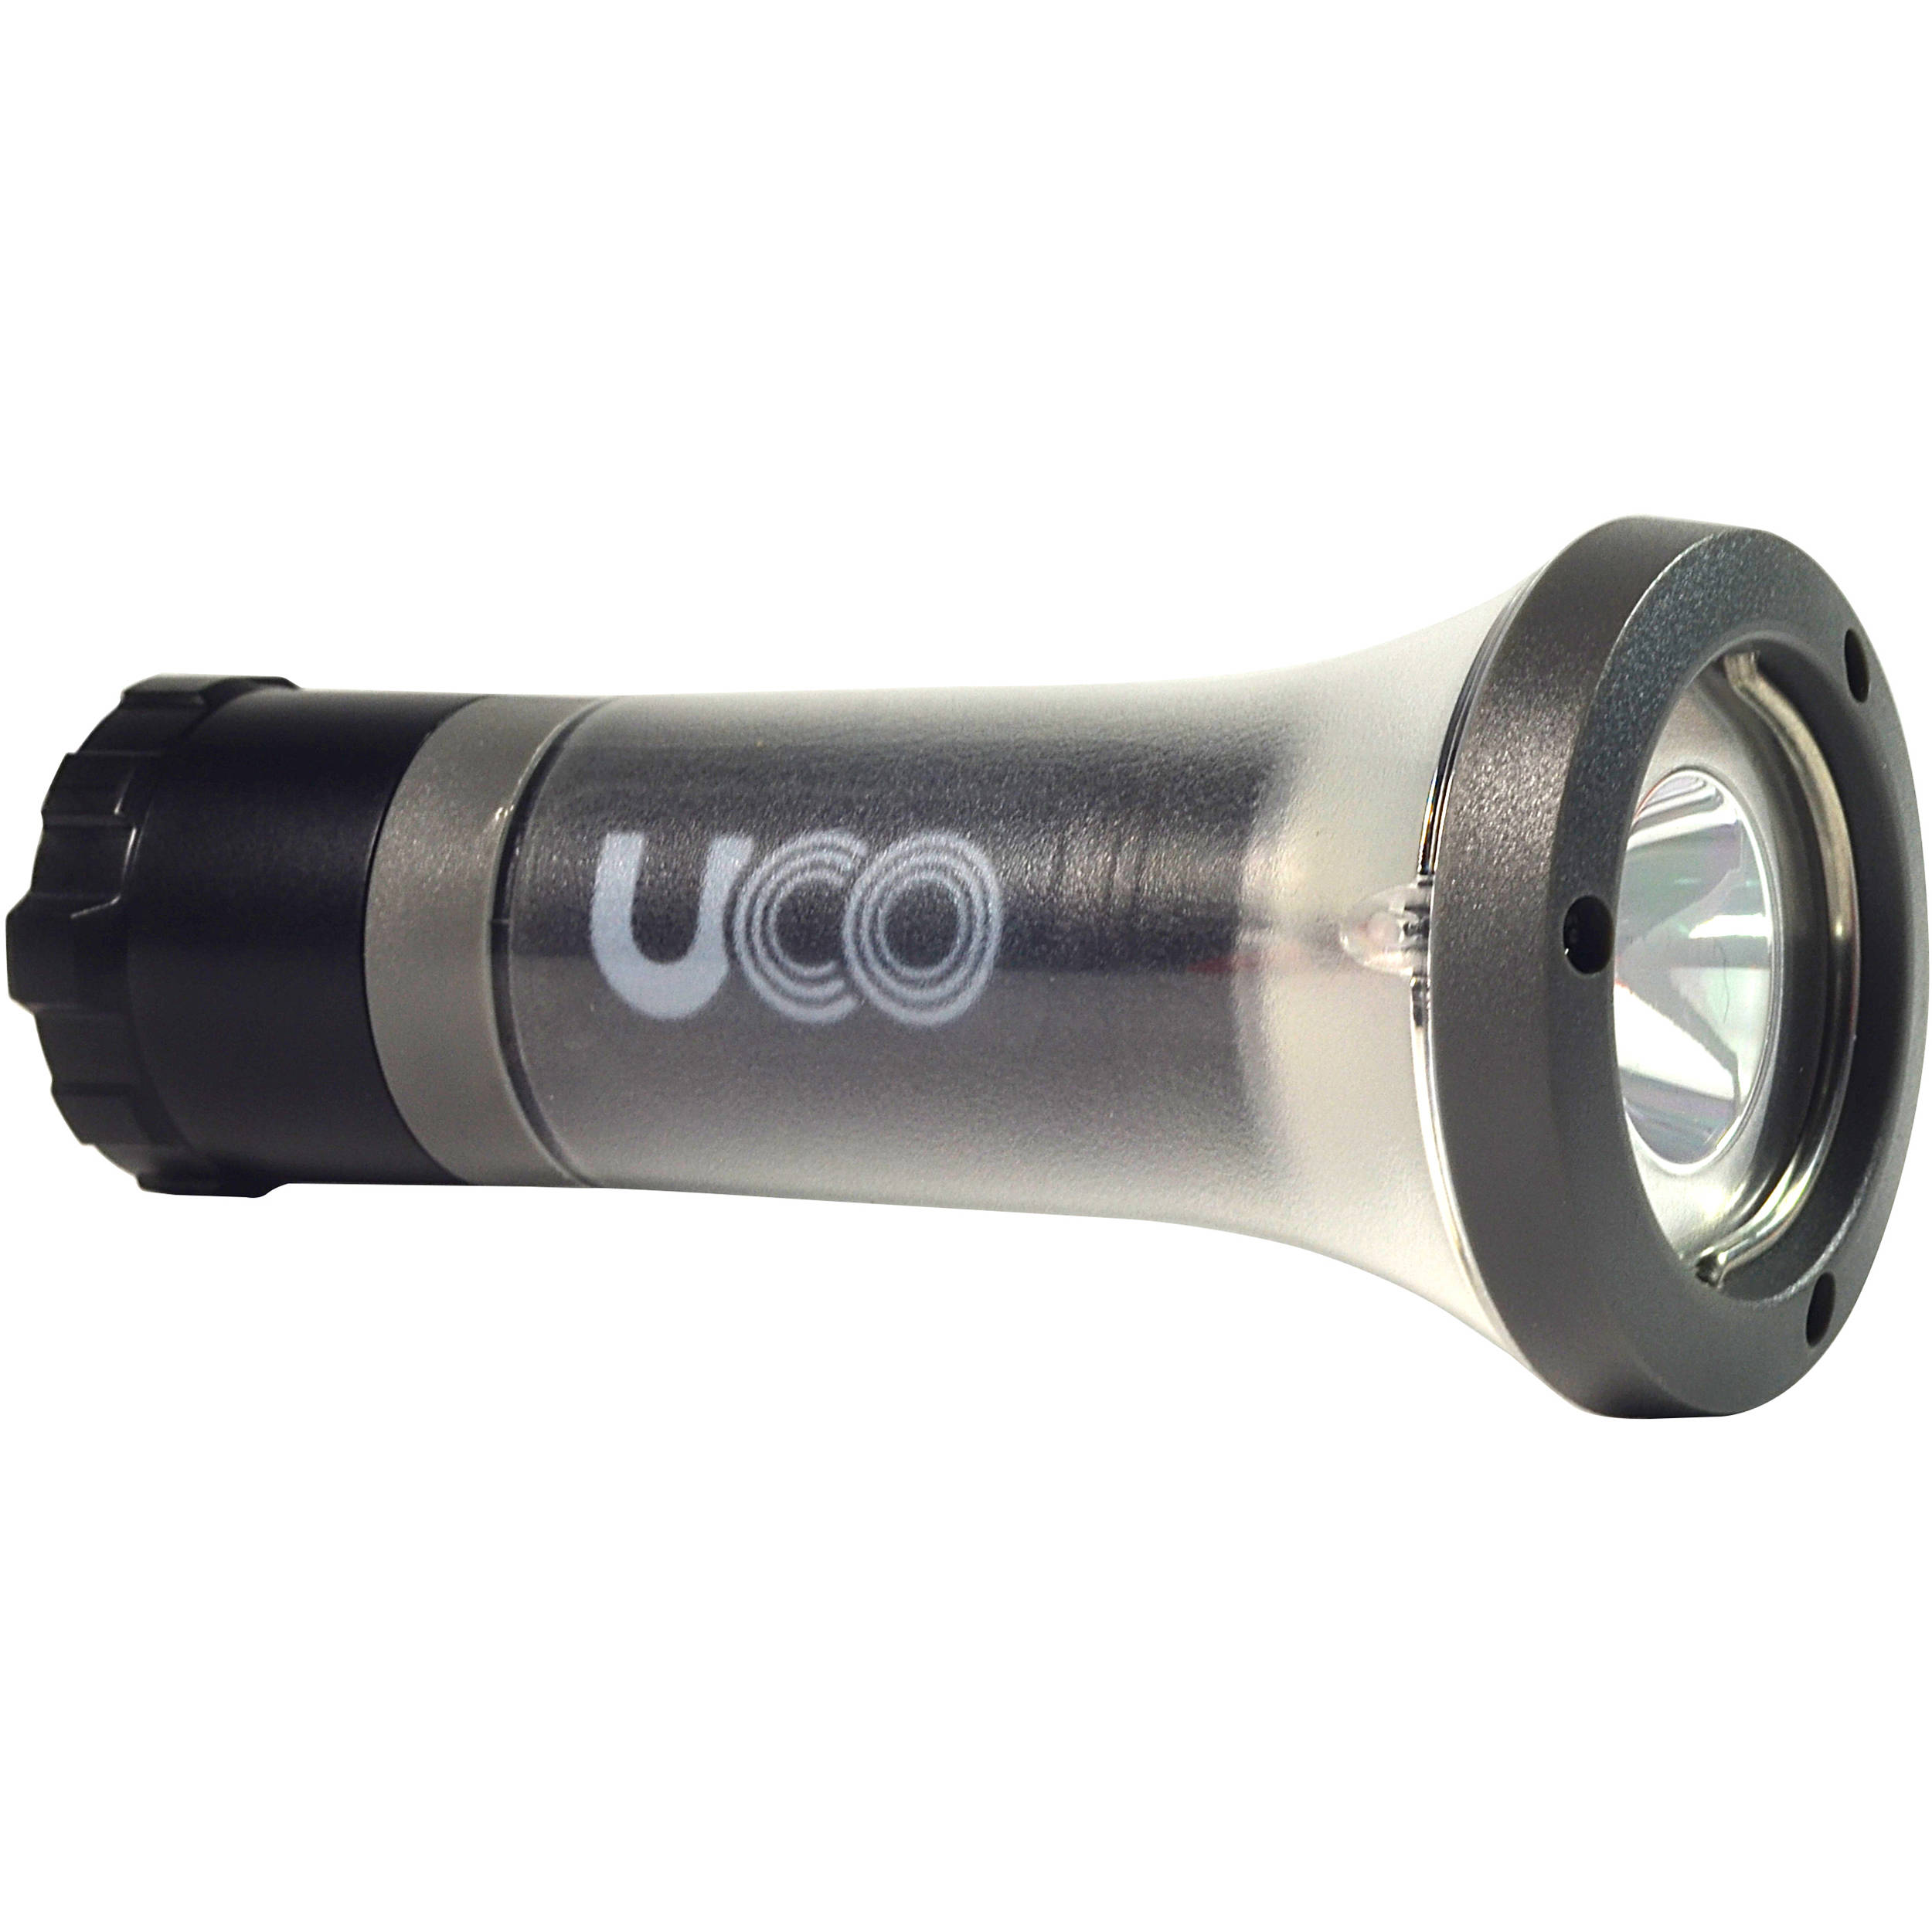 Black UCO Clarus 2 Lantern /& Torch